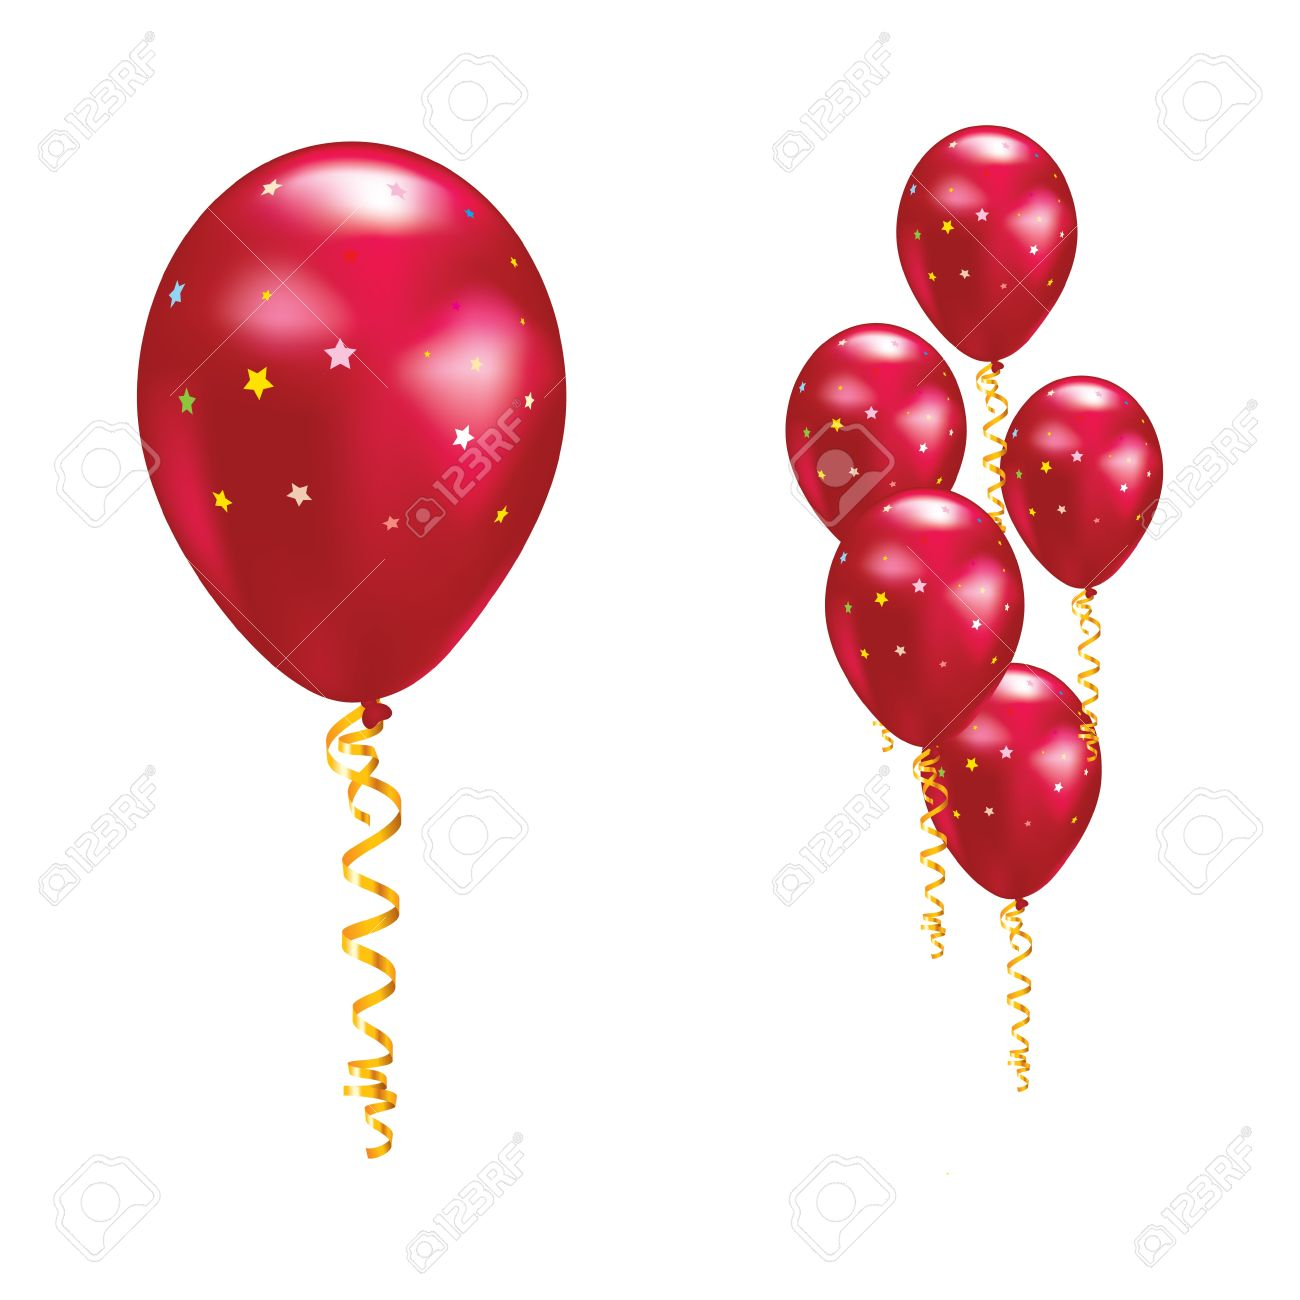 Red balloons with stars and ribbons. Vector illustration. Stock Vector - 10661896